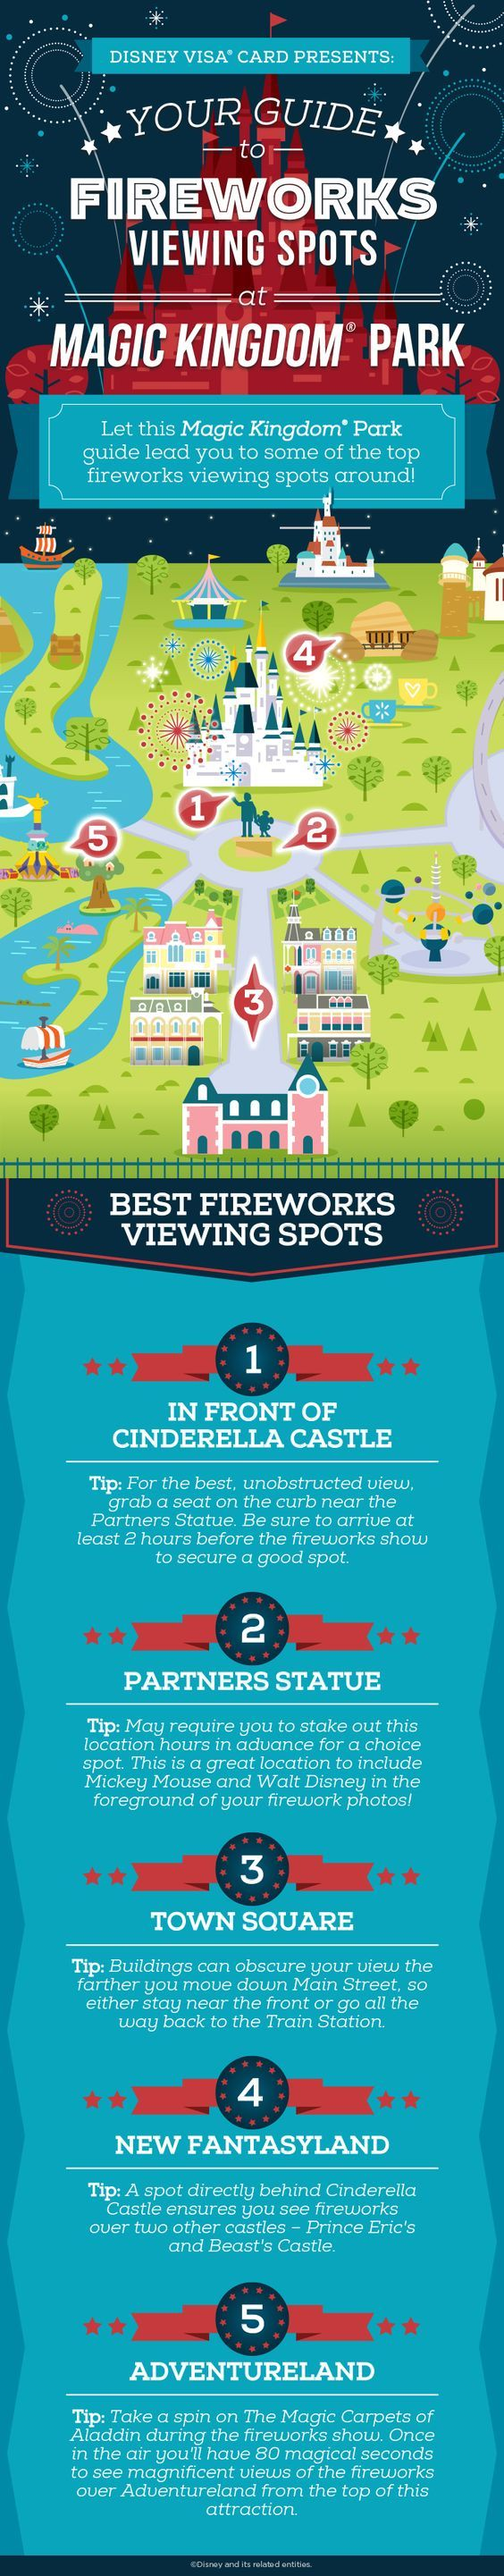 See some of the best 4th of July fireworks around at Walt Disney World® Resort. This guide to fireworks viewing spots will help you score a prime spot to all the magic!